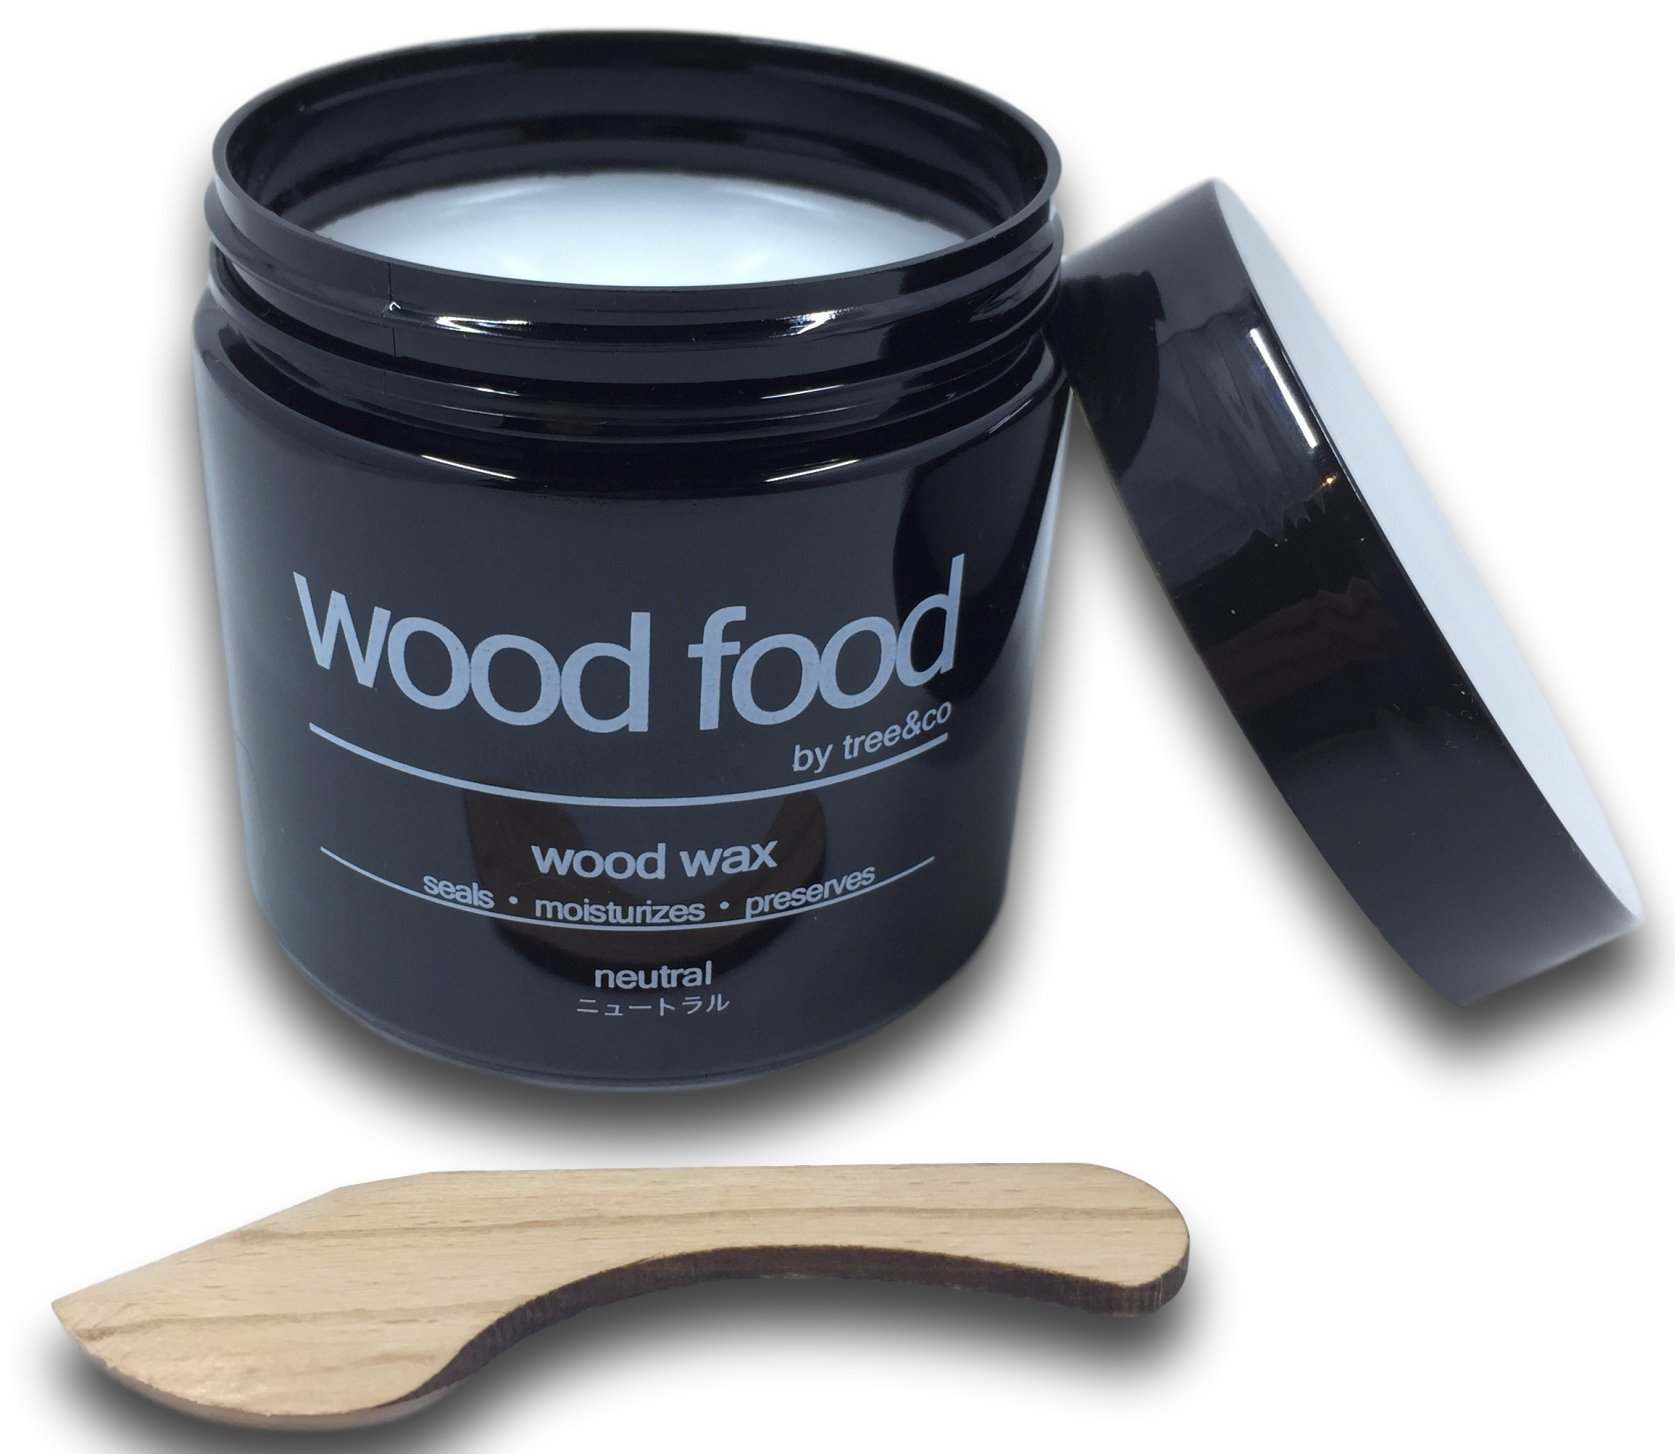 Wood Food Wax - Protection for Cutting Boards, Furniture, Flooring, Toys & Salad Bowls (Neutral, 180ml / 6oz)